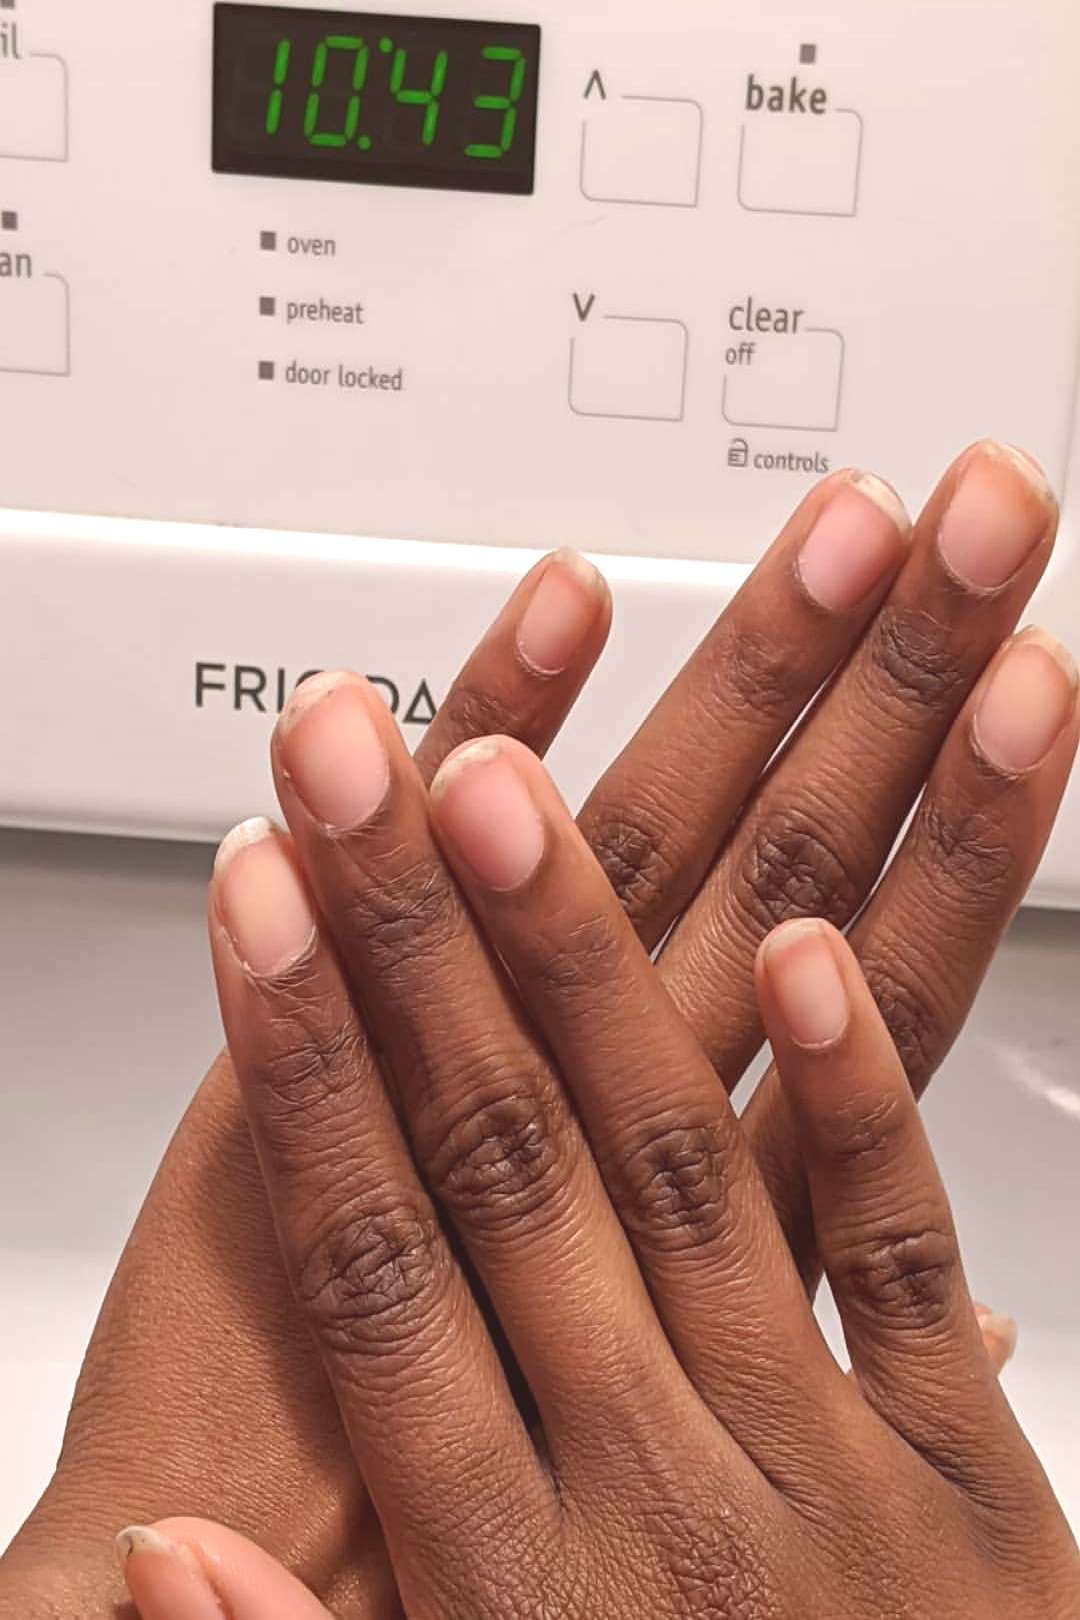 How long do you think this mani took? Swipe or scroll down for t